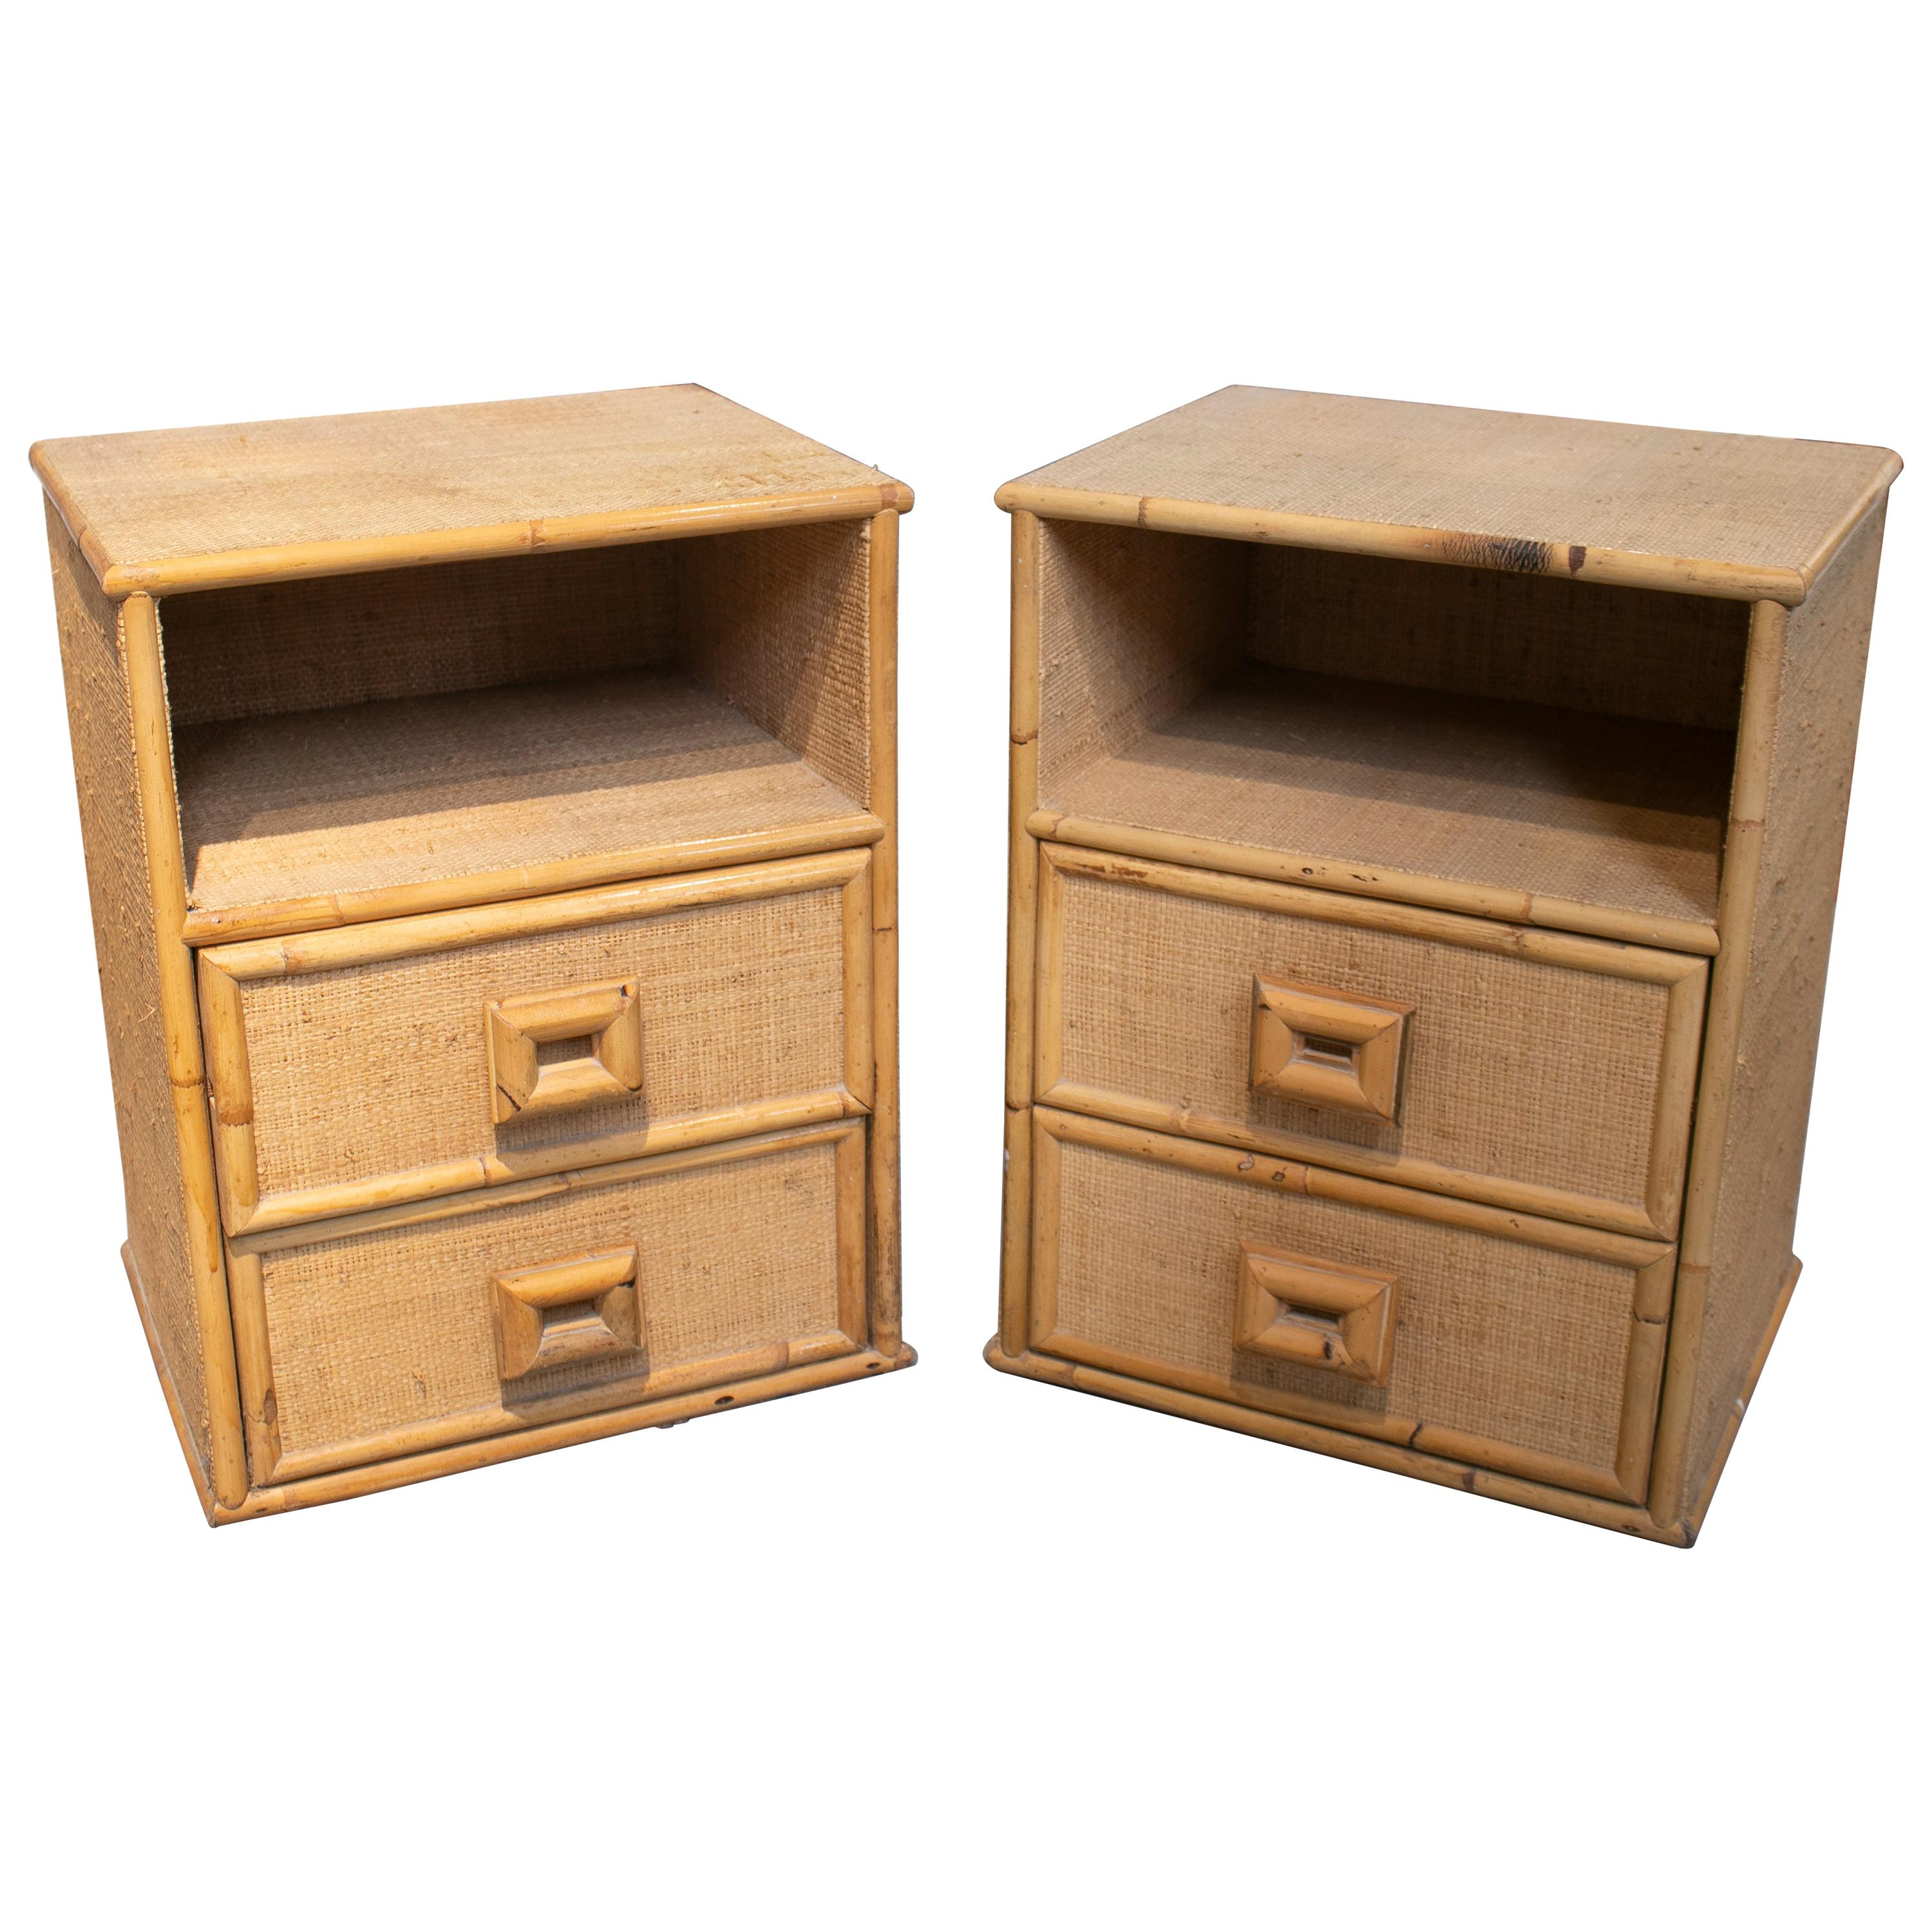 1980s Pair of Spanish Bamboo and Wicker Bedside Tables